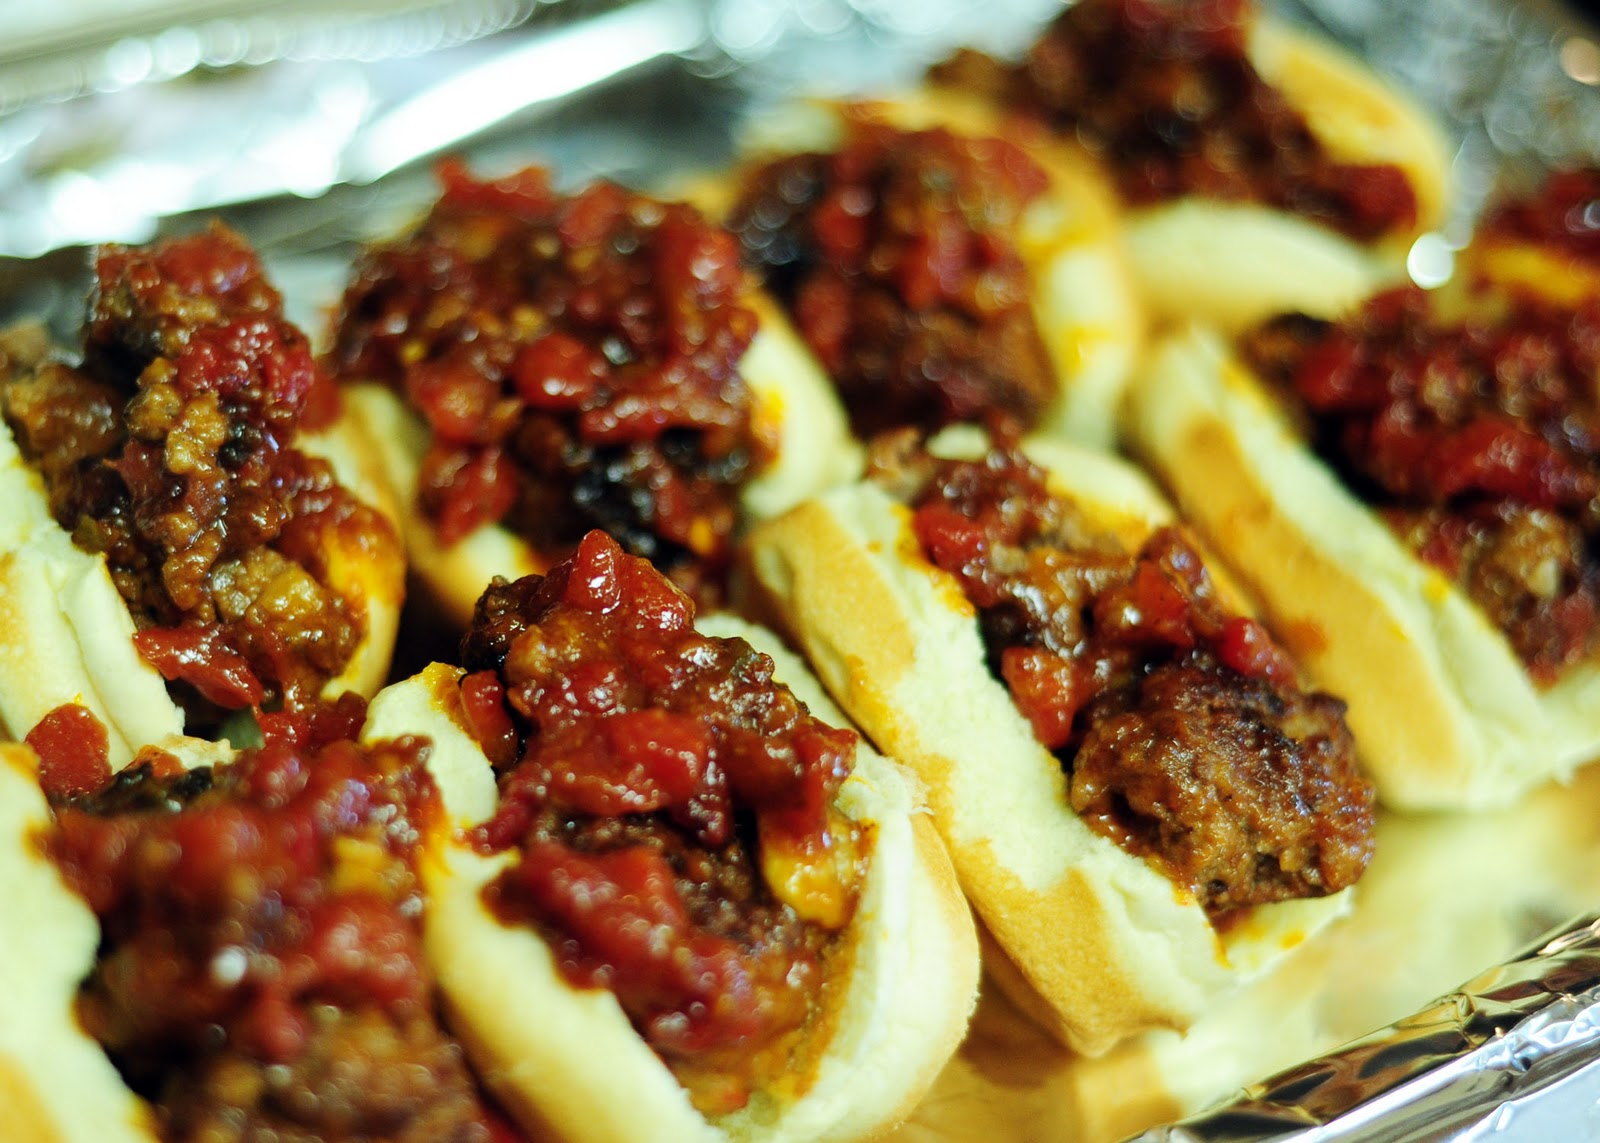 ... Girl's Guide to the Good Life: Sweet and Spicy Mini Meatball Sliders